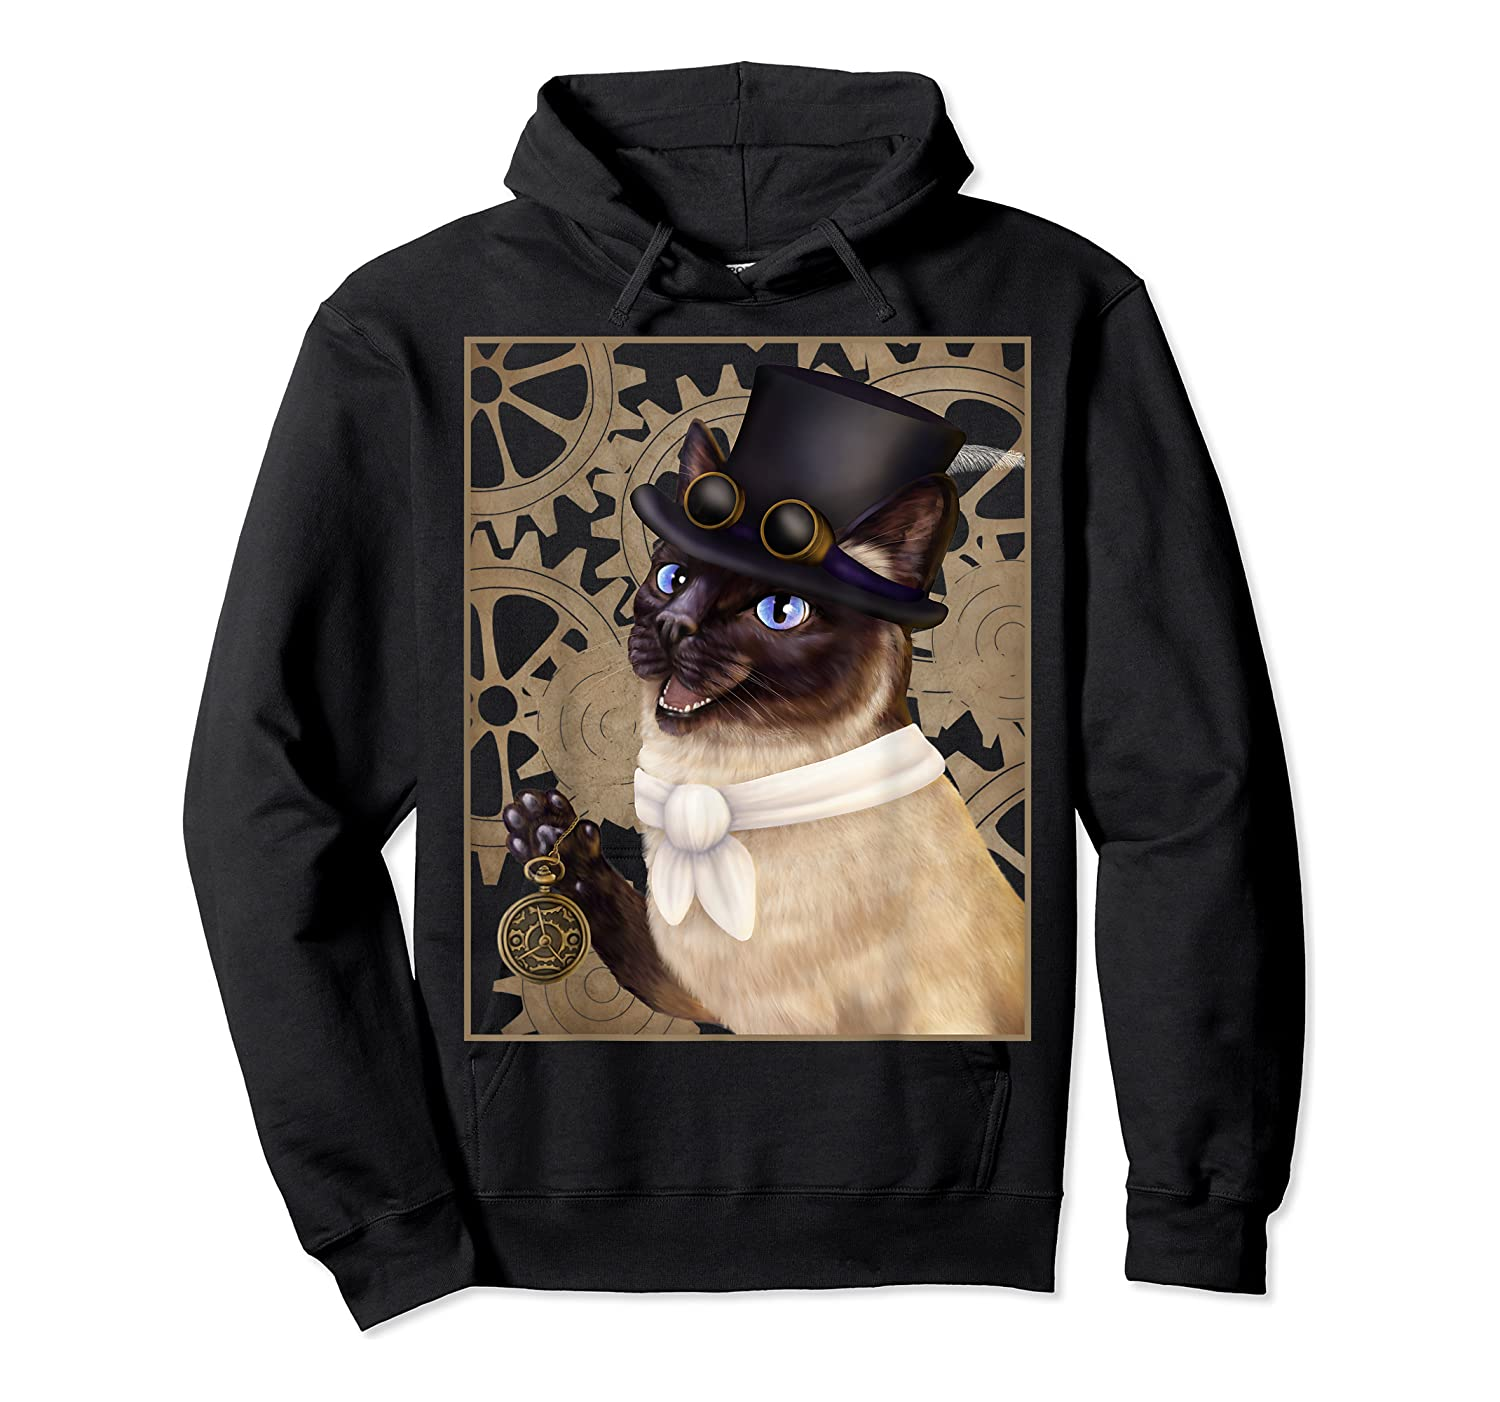 Steampunk Cat - Siamese With A Top Hat, Goggles, And Gears T-shirt Unisex Pullover Hoodie